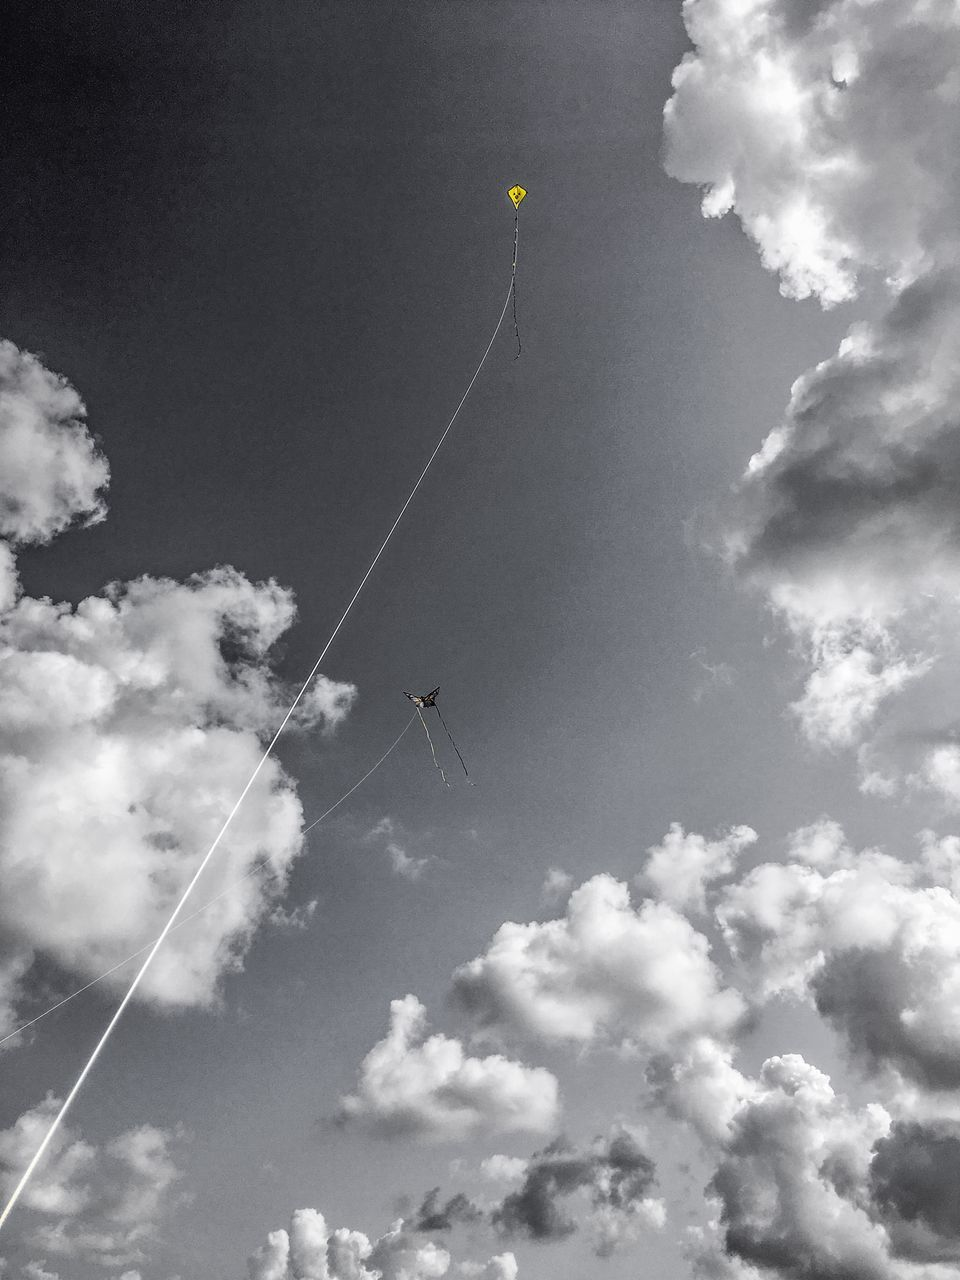 cloud - sky, sky, low angle view, day, flying, nature, mid-air, no people, beauty in nature, outdoors, kite - toy, sport, transportation, adventure, rope, tranquility, kite, sunlight, extreme sports, tranquil scene, vapor trail